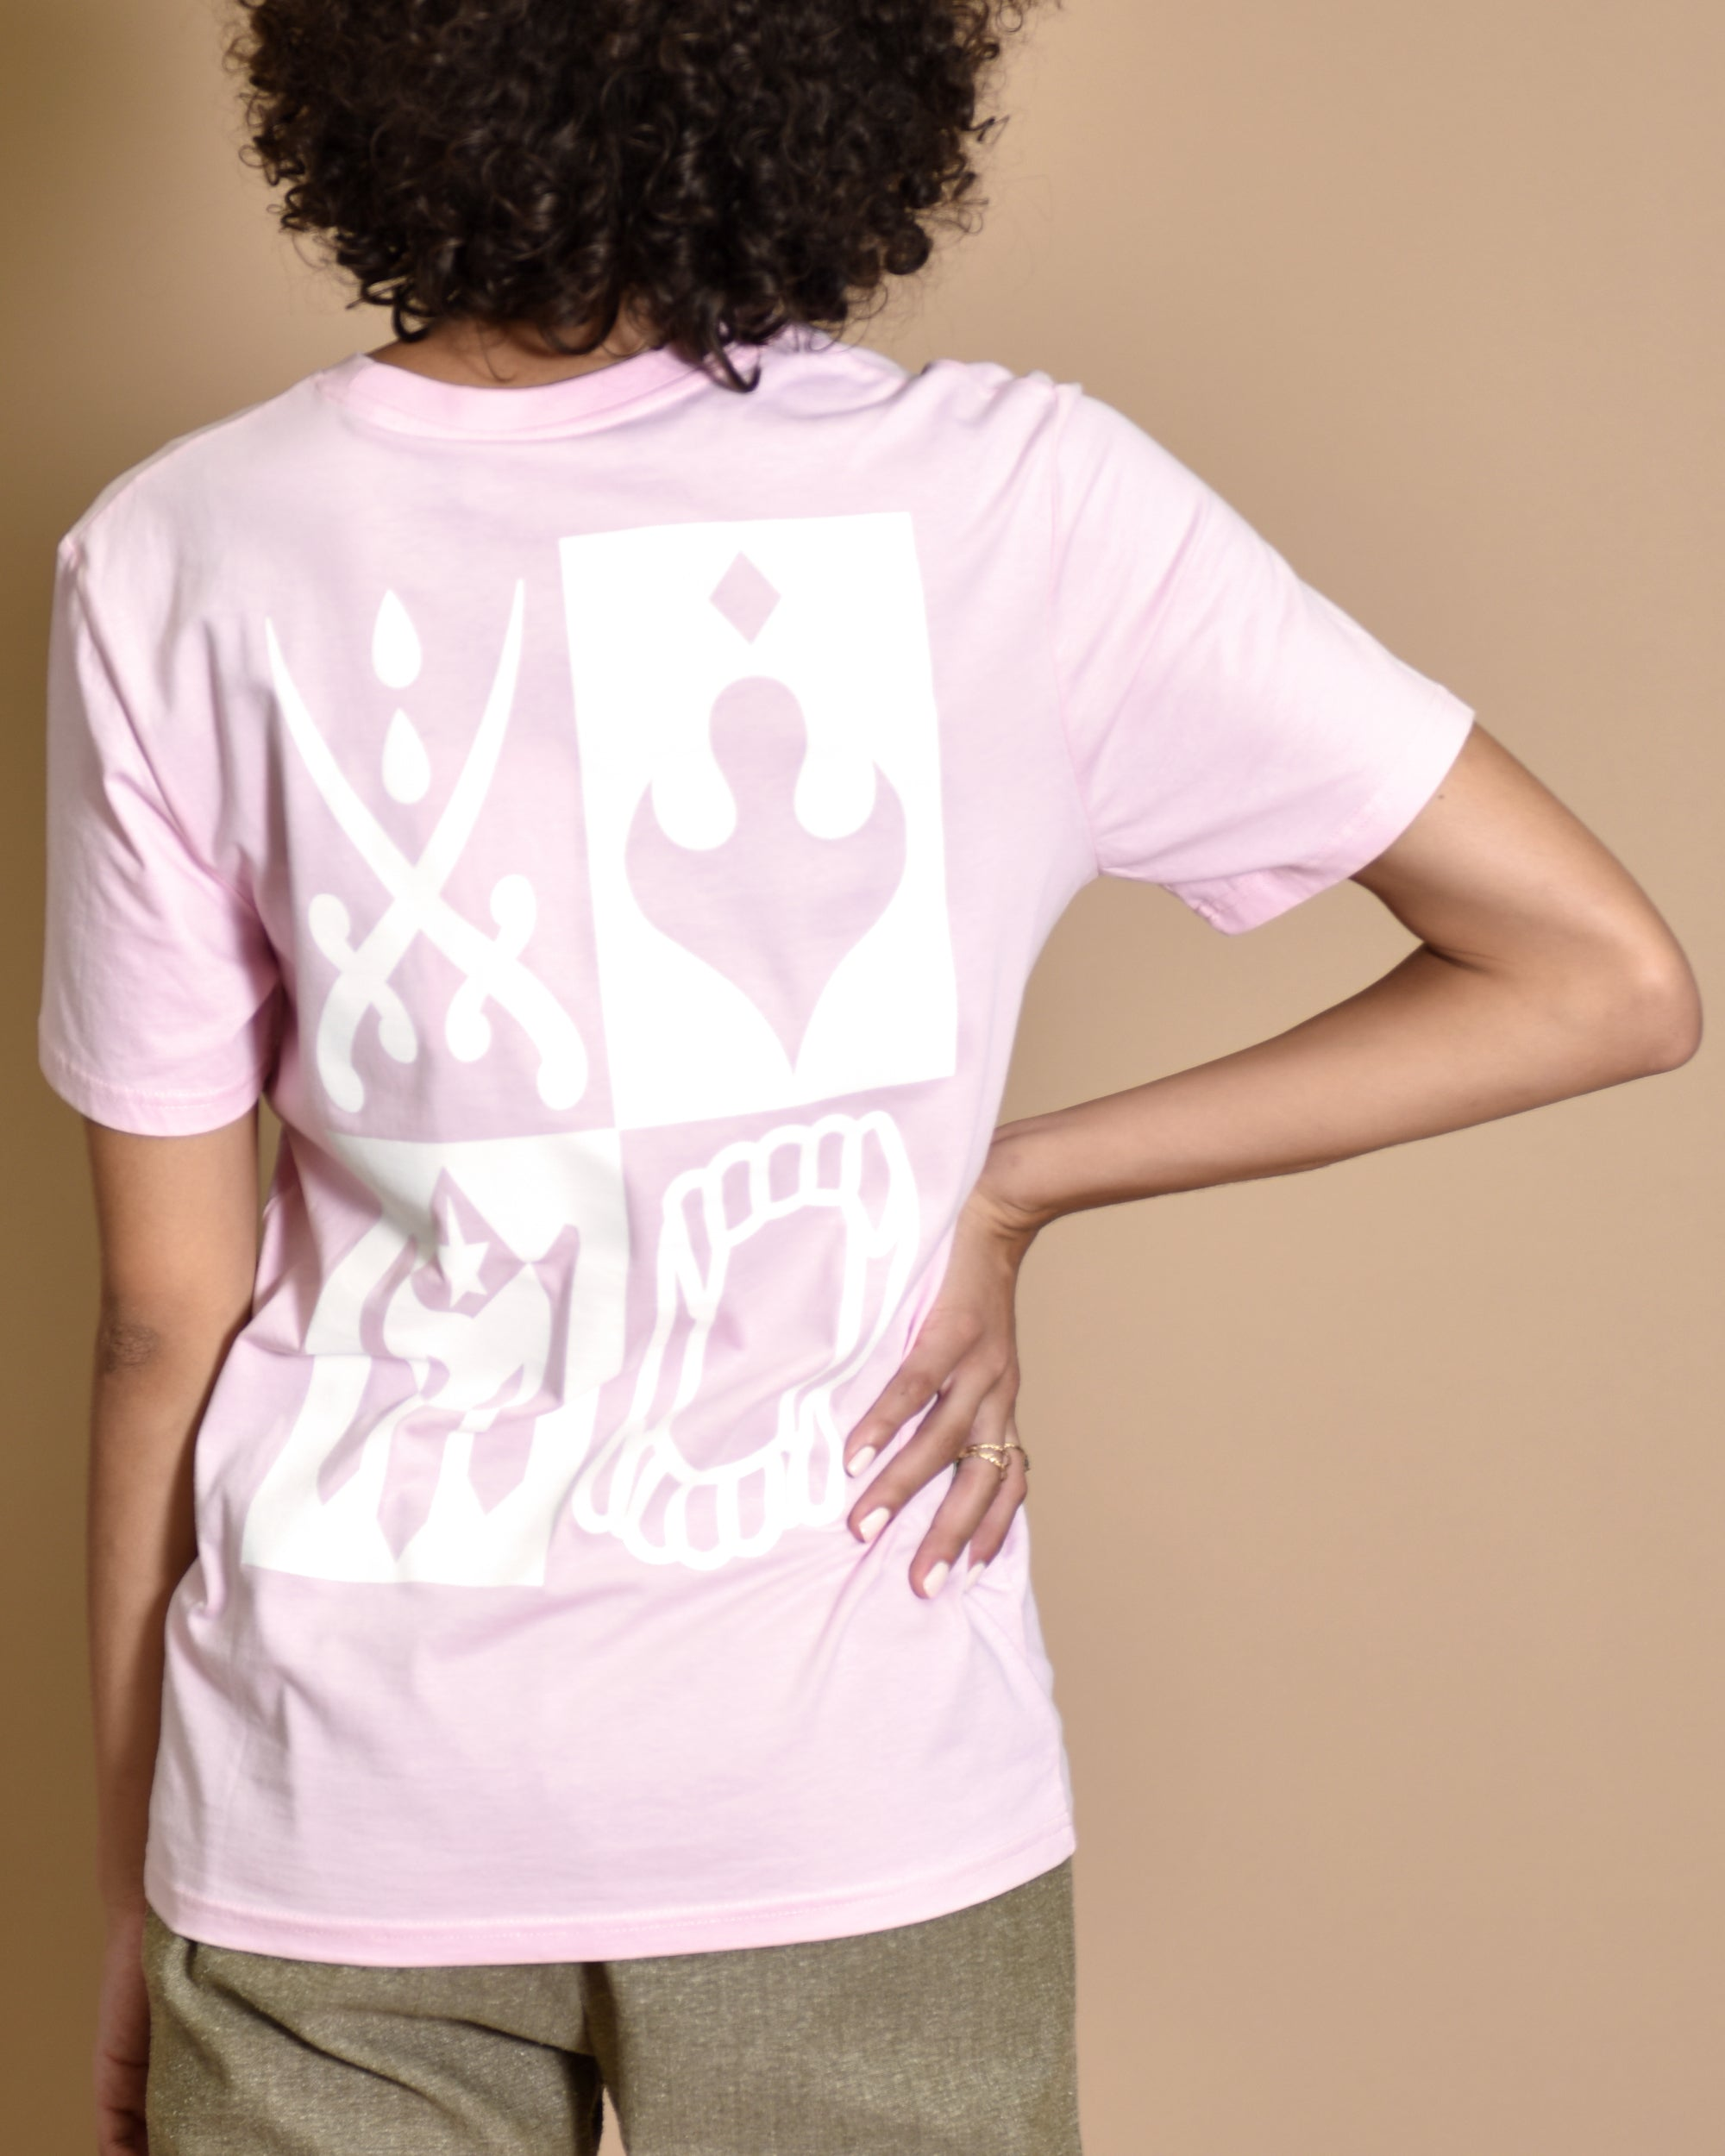 NATALIE B COLEMAN Sisters T-Shirt Pink